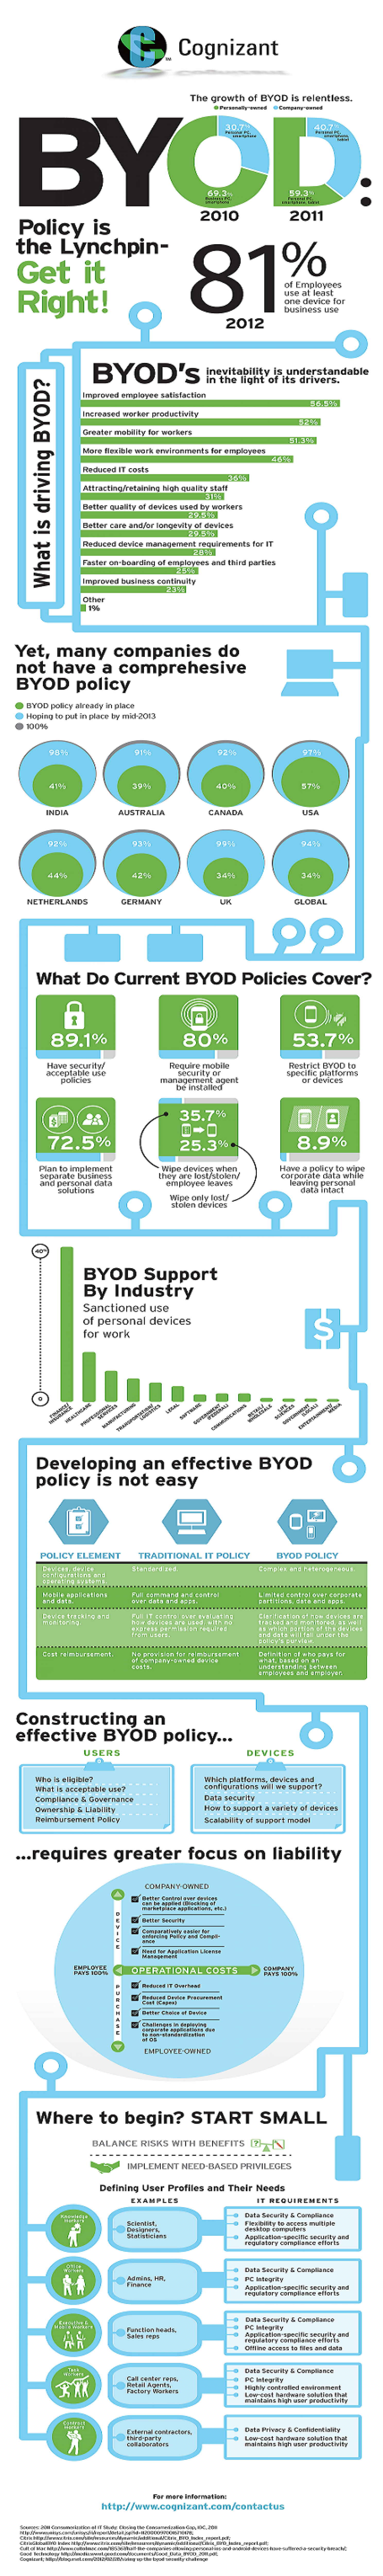 Making BYOD Work for Your Organization Infographic